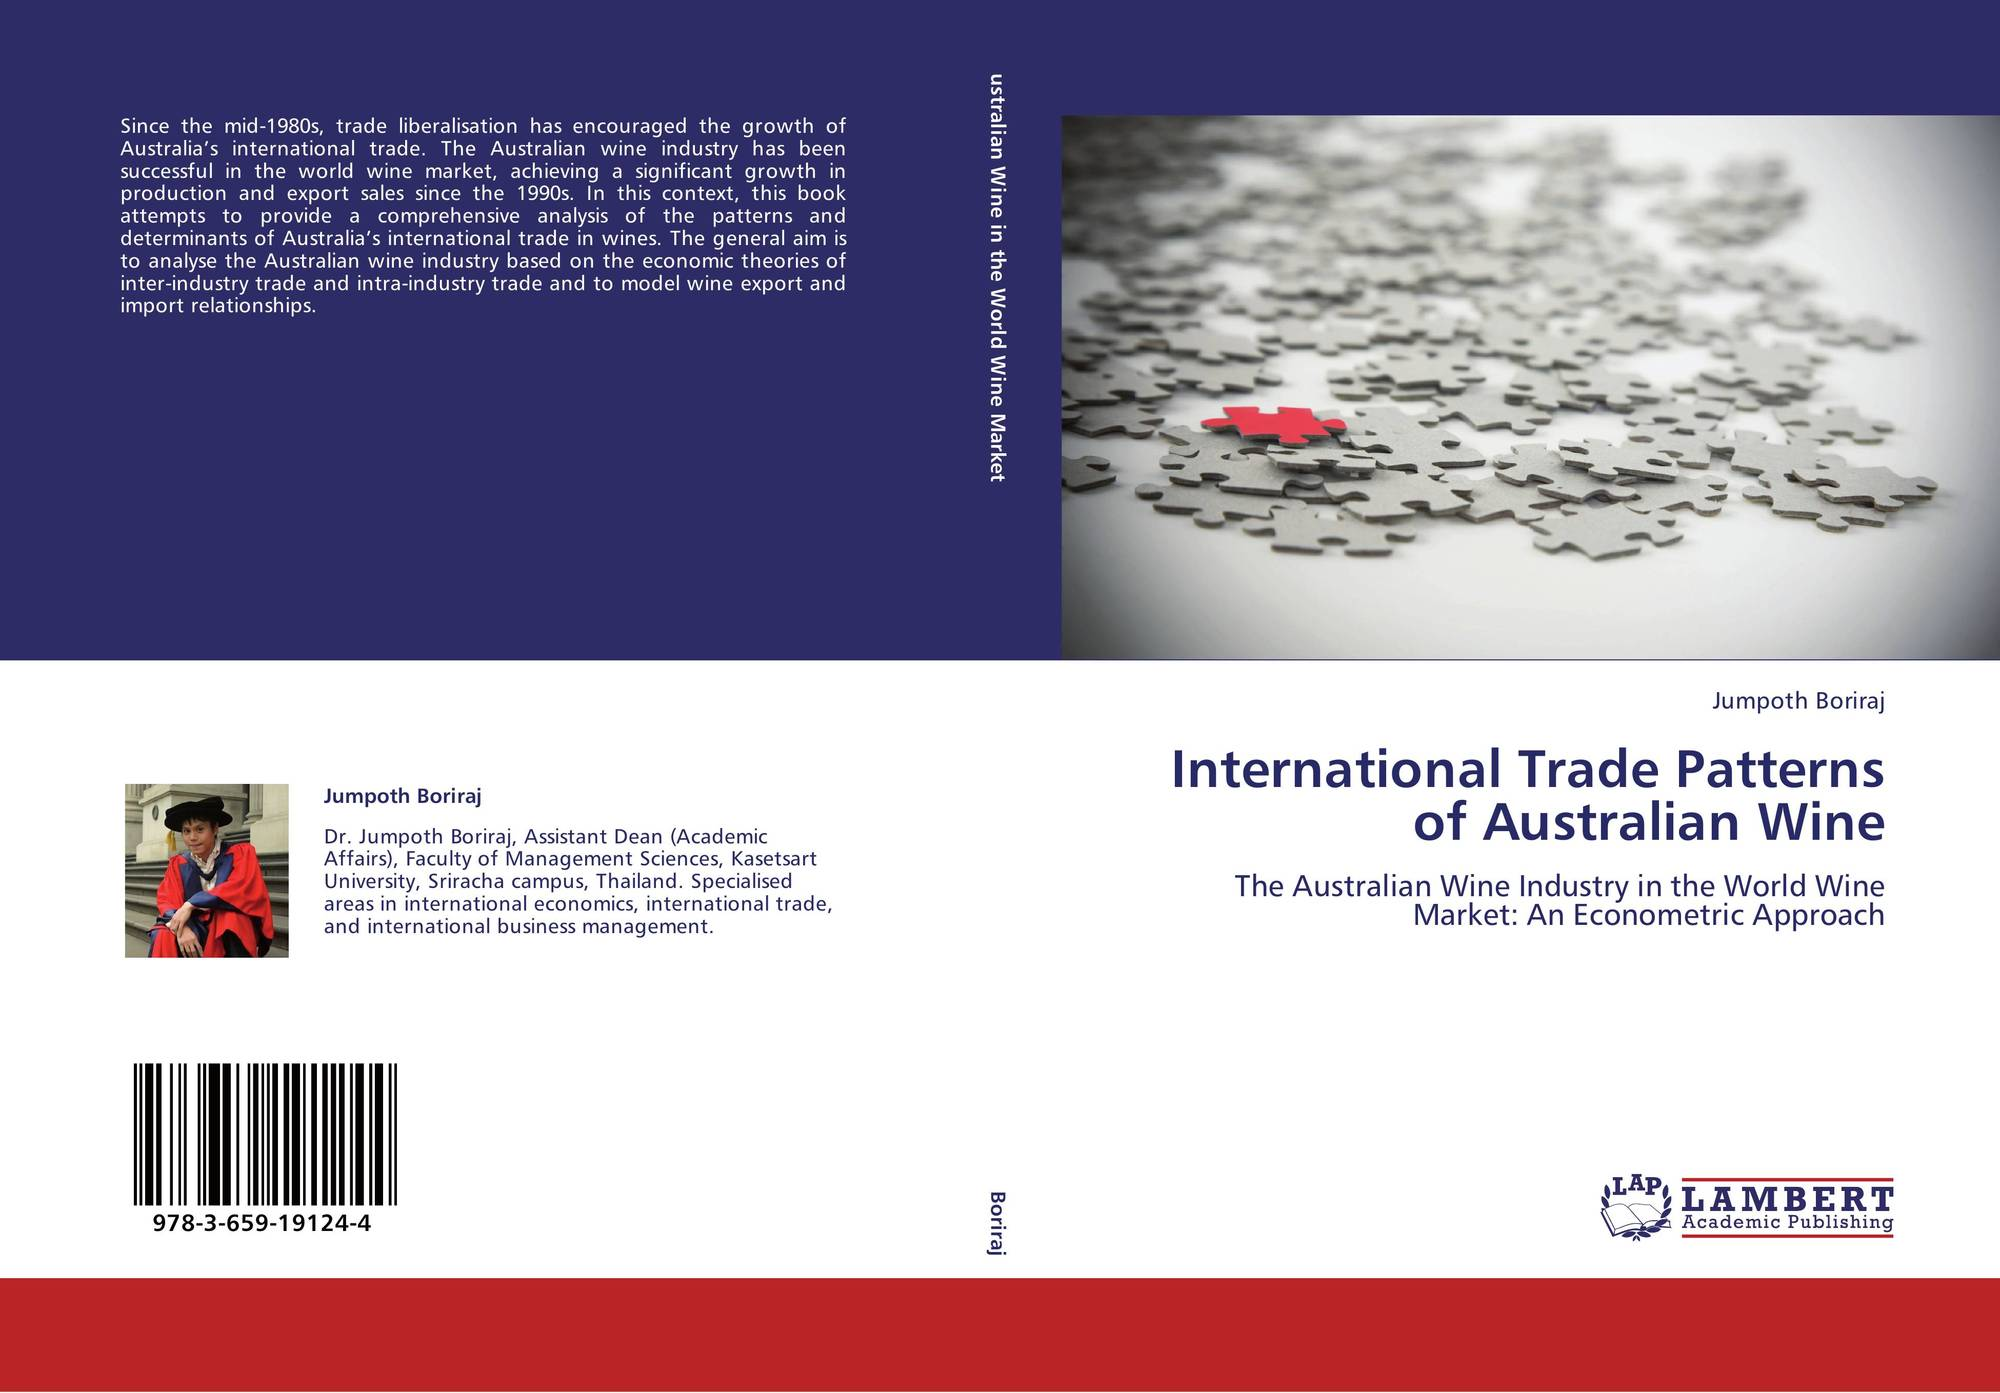 essay about the pattern of international trade An introduction to international trade theory a short-course presented at the kiel institute for world economics january 9-20, 2006 james r markusen.